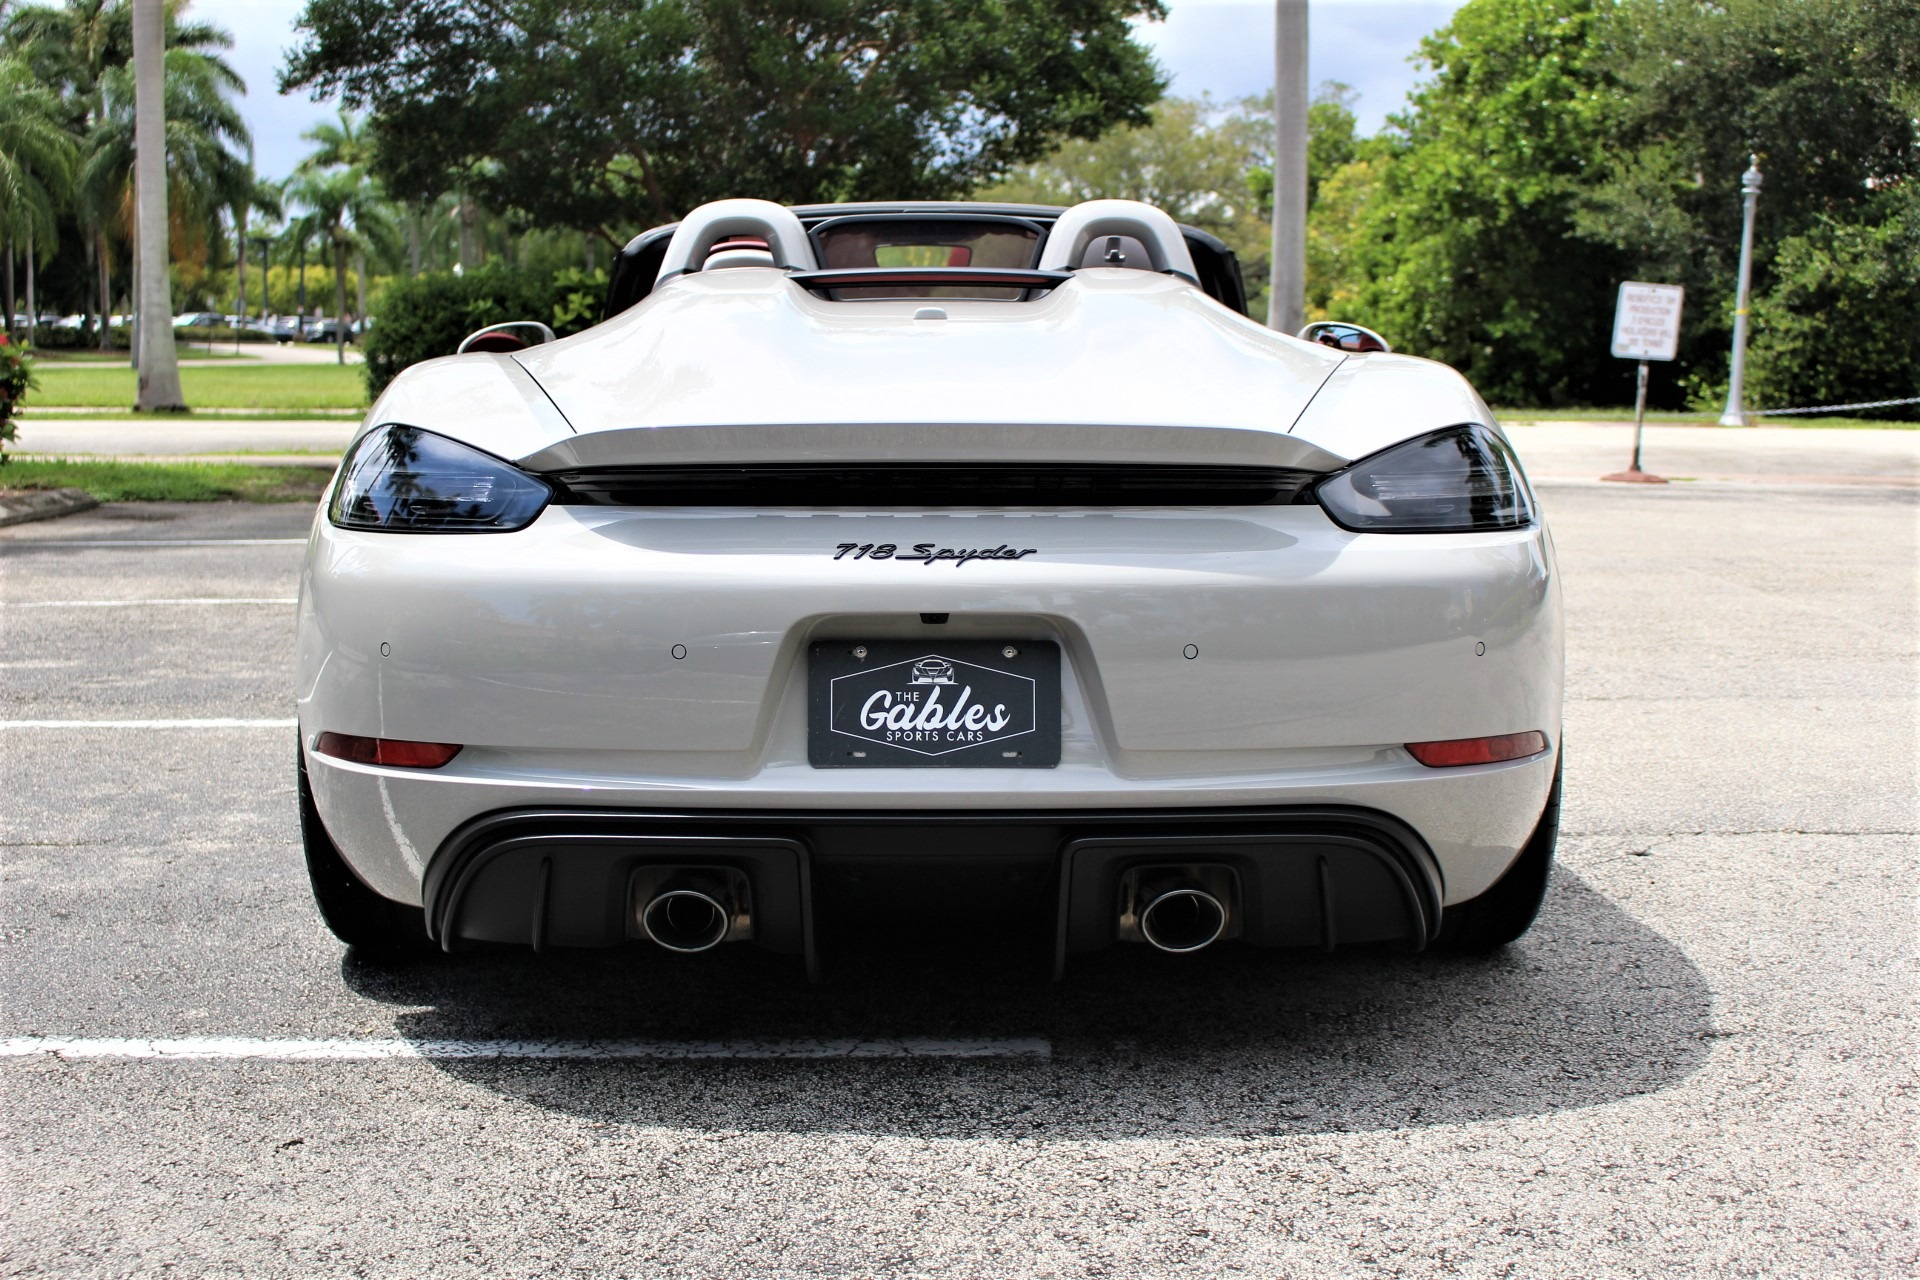 Used 2021 Porsche 718 Boxster Spyder for sale Sold at The Gables Sports Cars in Miami FL 33146 4